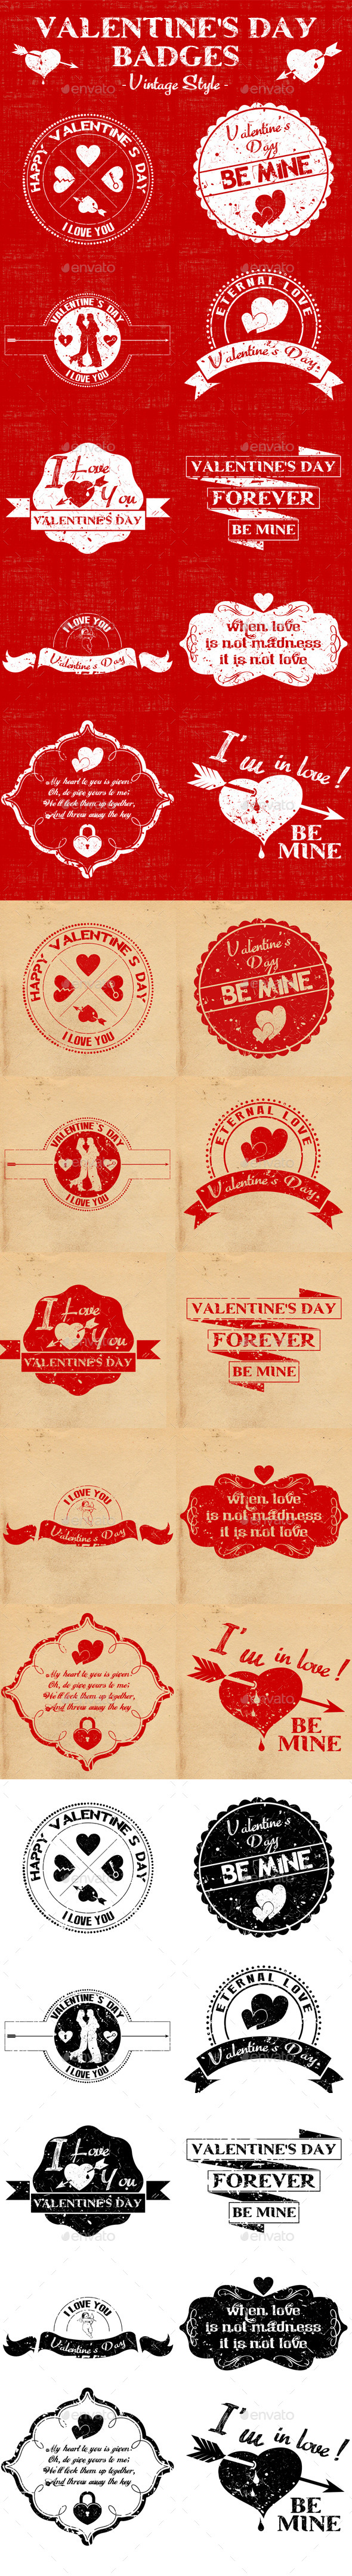 GraphicRiver Valentine s Day Badges Vintage Style 10050283